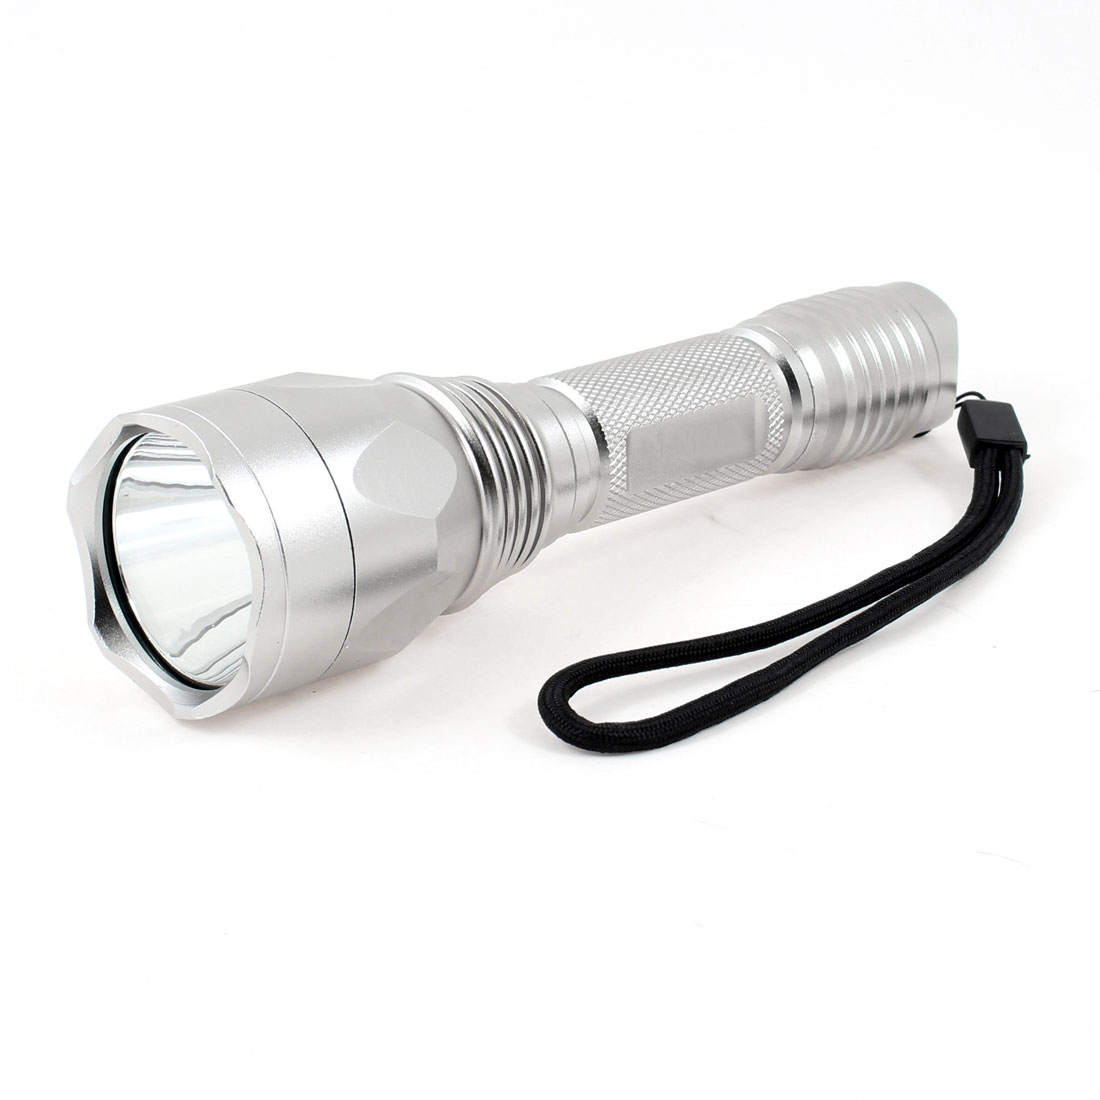 "6.3"" Long 850 Lumens White LED Light Flashlight Torch Silver Tone w Strap"